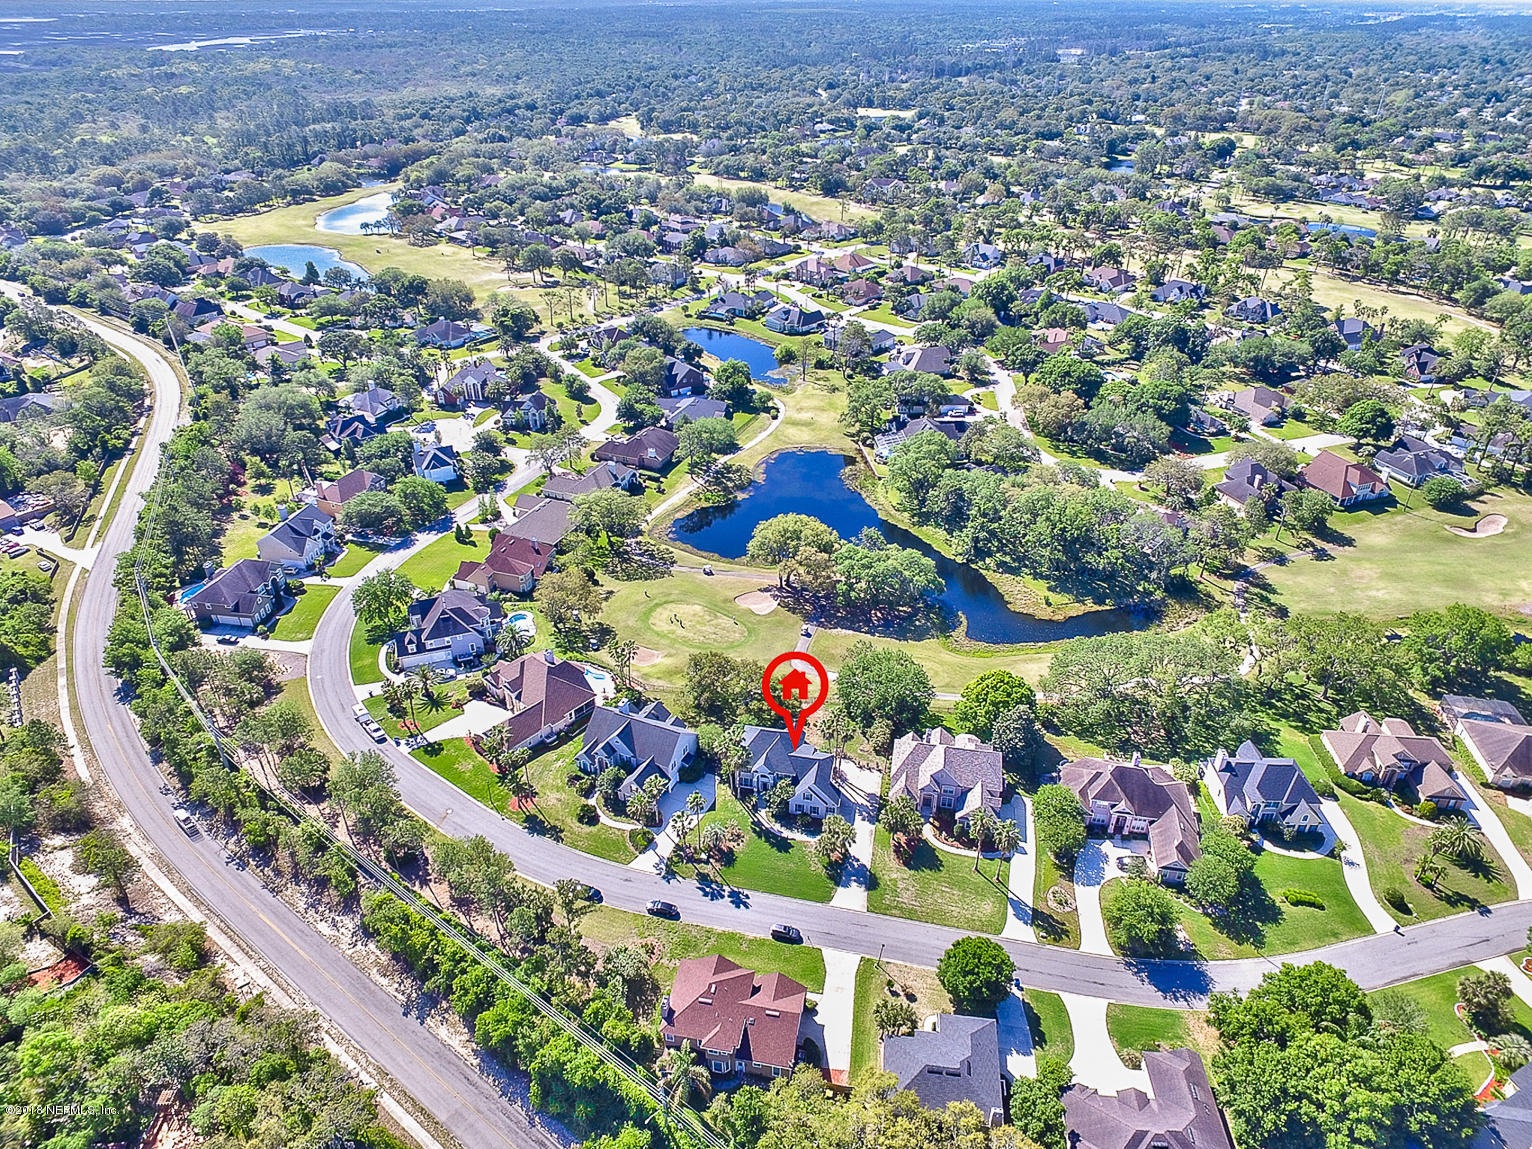 12518 HIGHVIEW, JACKSONVILLE, FLORIDA 32225, 5 Bedrooms Bedrooms, ,2 BathroomsBathrooms,Residential - single family,For sale,HIGHVIEW,932440